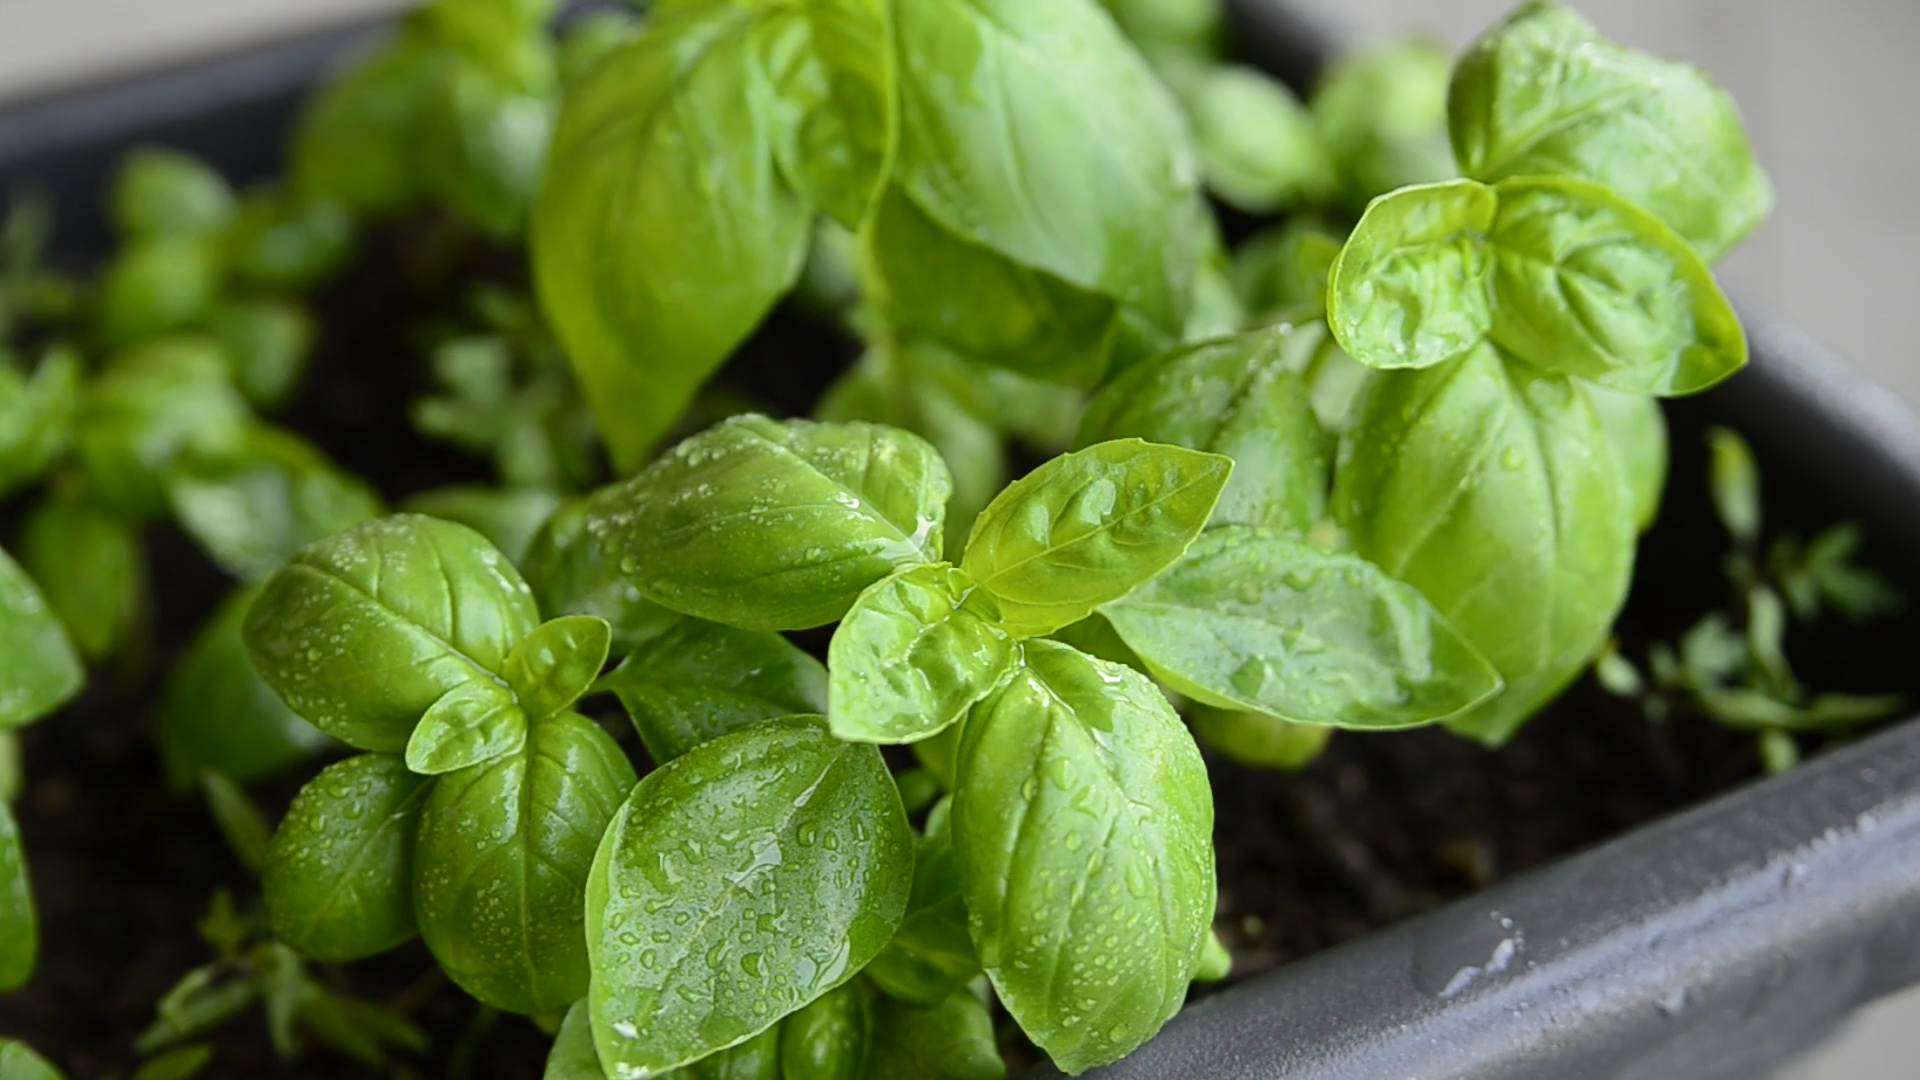 videoblocks-potted-basil-close-up-leaves-of-intense-green-color-with-drops-of-dew-move-slightly-moved-by-the-wind_r8e3avd17_thumbnail-full01.png